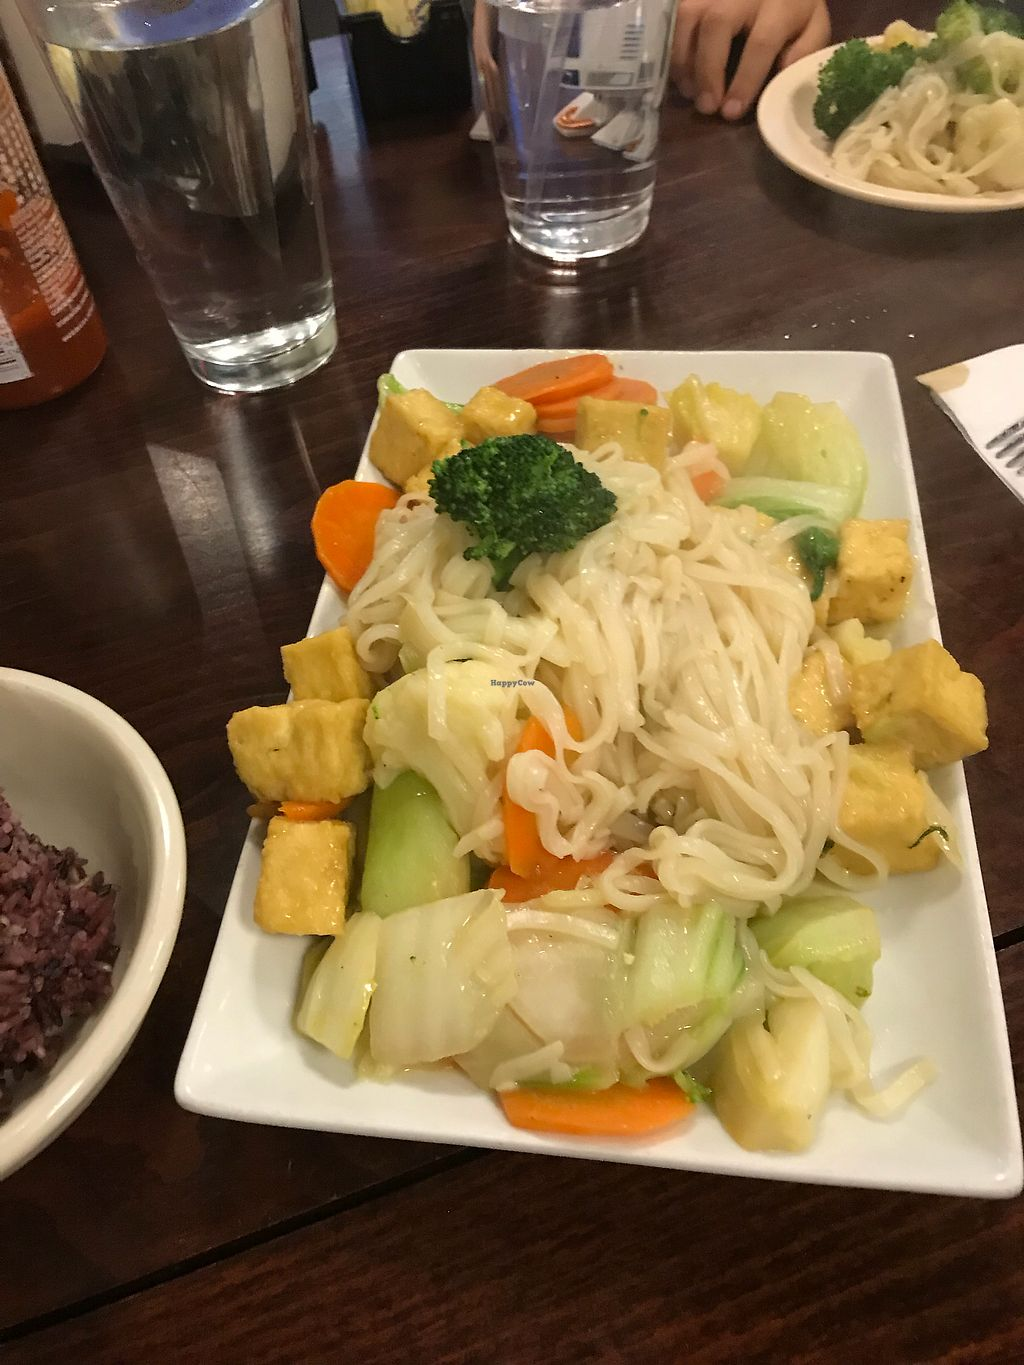 """Photo of Veggie Heaven  by <a href=""""/members/profile/Vegan%20Vagabond"""">Vegan Vagabond</a> <br/>:) <br/> February 12, 2018  - <a href='/contact/abuse/image/2515/358187'>Report</a>"""